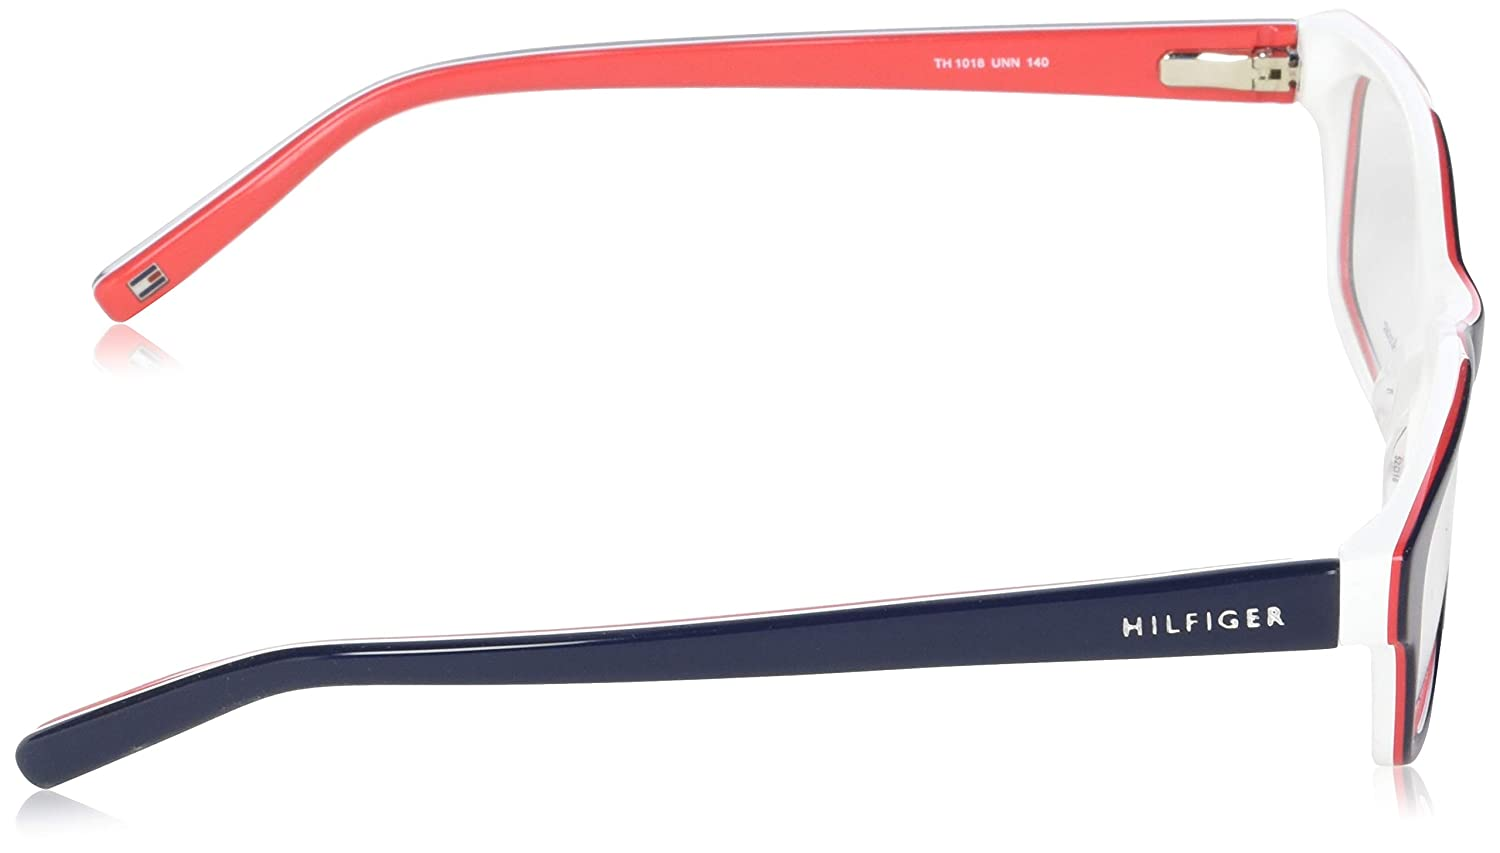 f6551f19b96 New Tommy Hilfiger Women s Eyeglasses TH 1018 UNN 5216 Blue Red 52 MM  Glasses  Amazon.ca  Clothing   Accessories